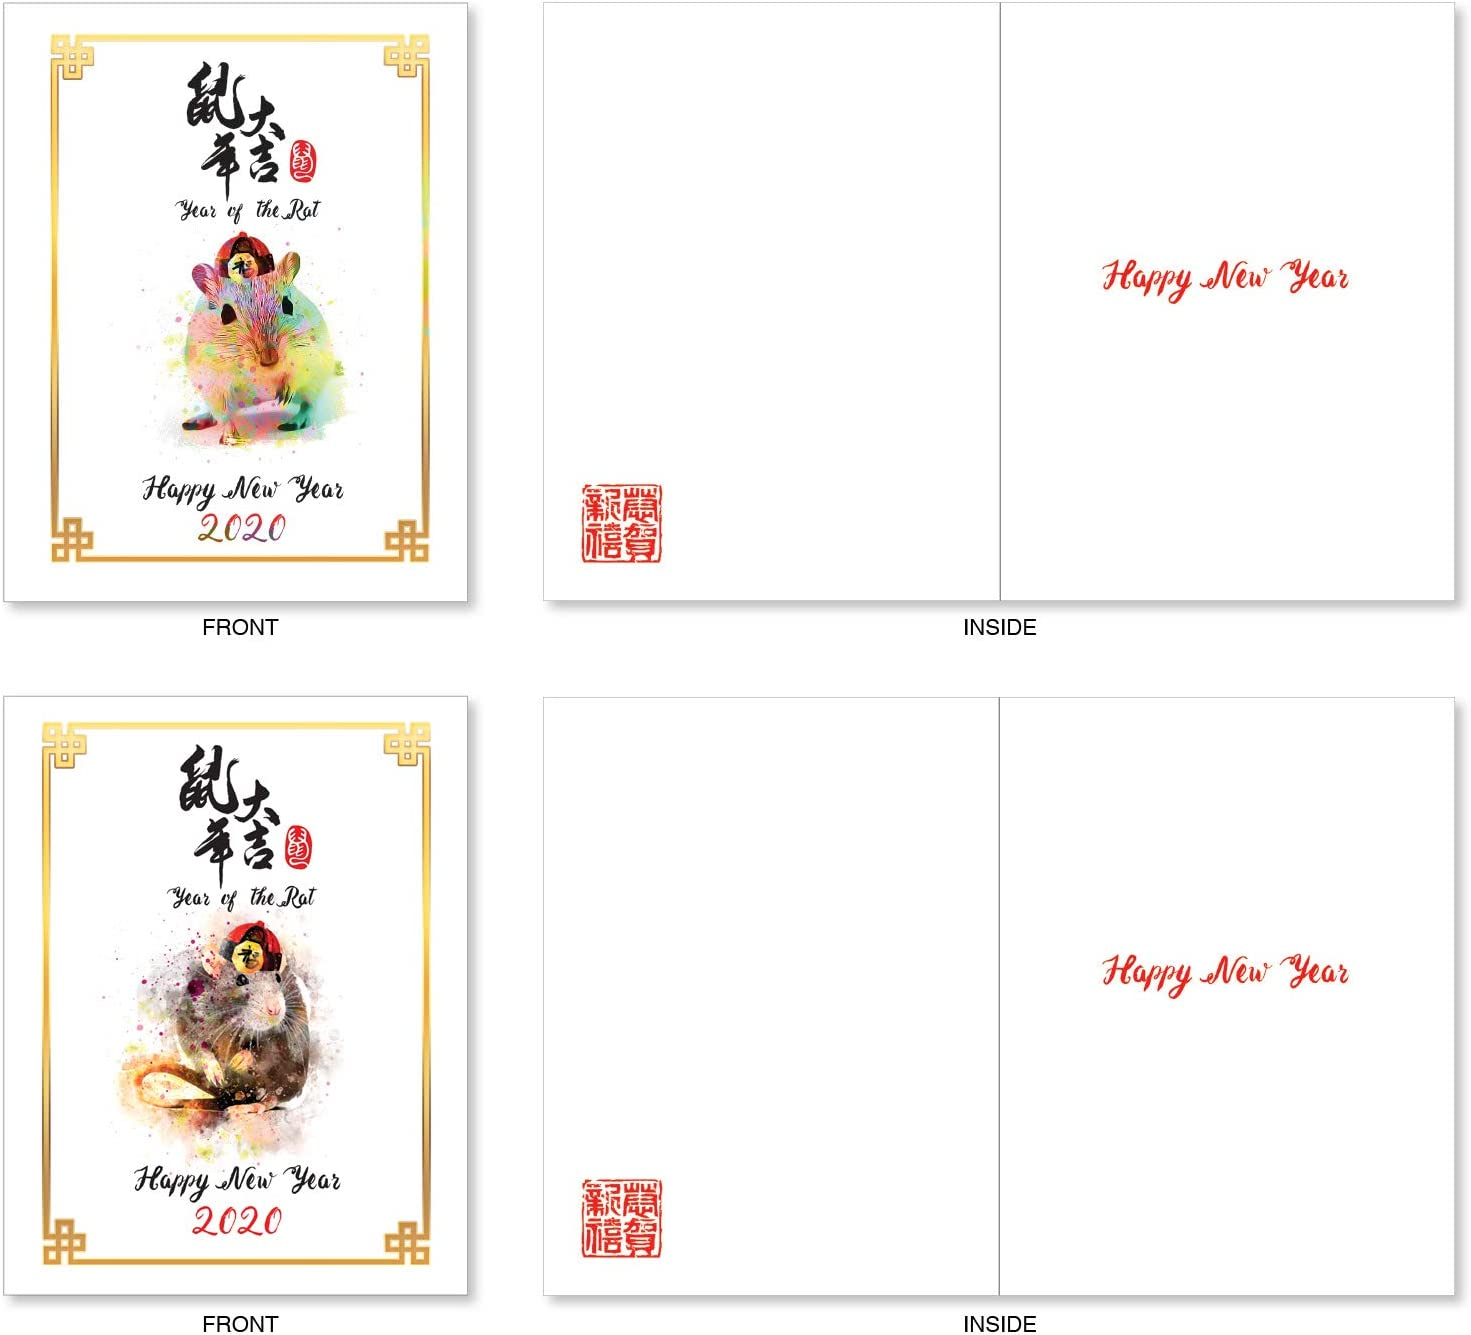 Chinese Year of the Pig Happy New Year Note Cards Set of 20 Cherry Blossoms Inside 3